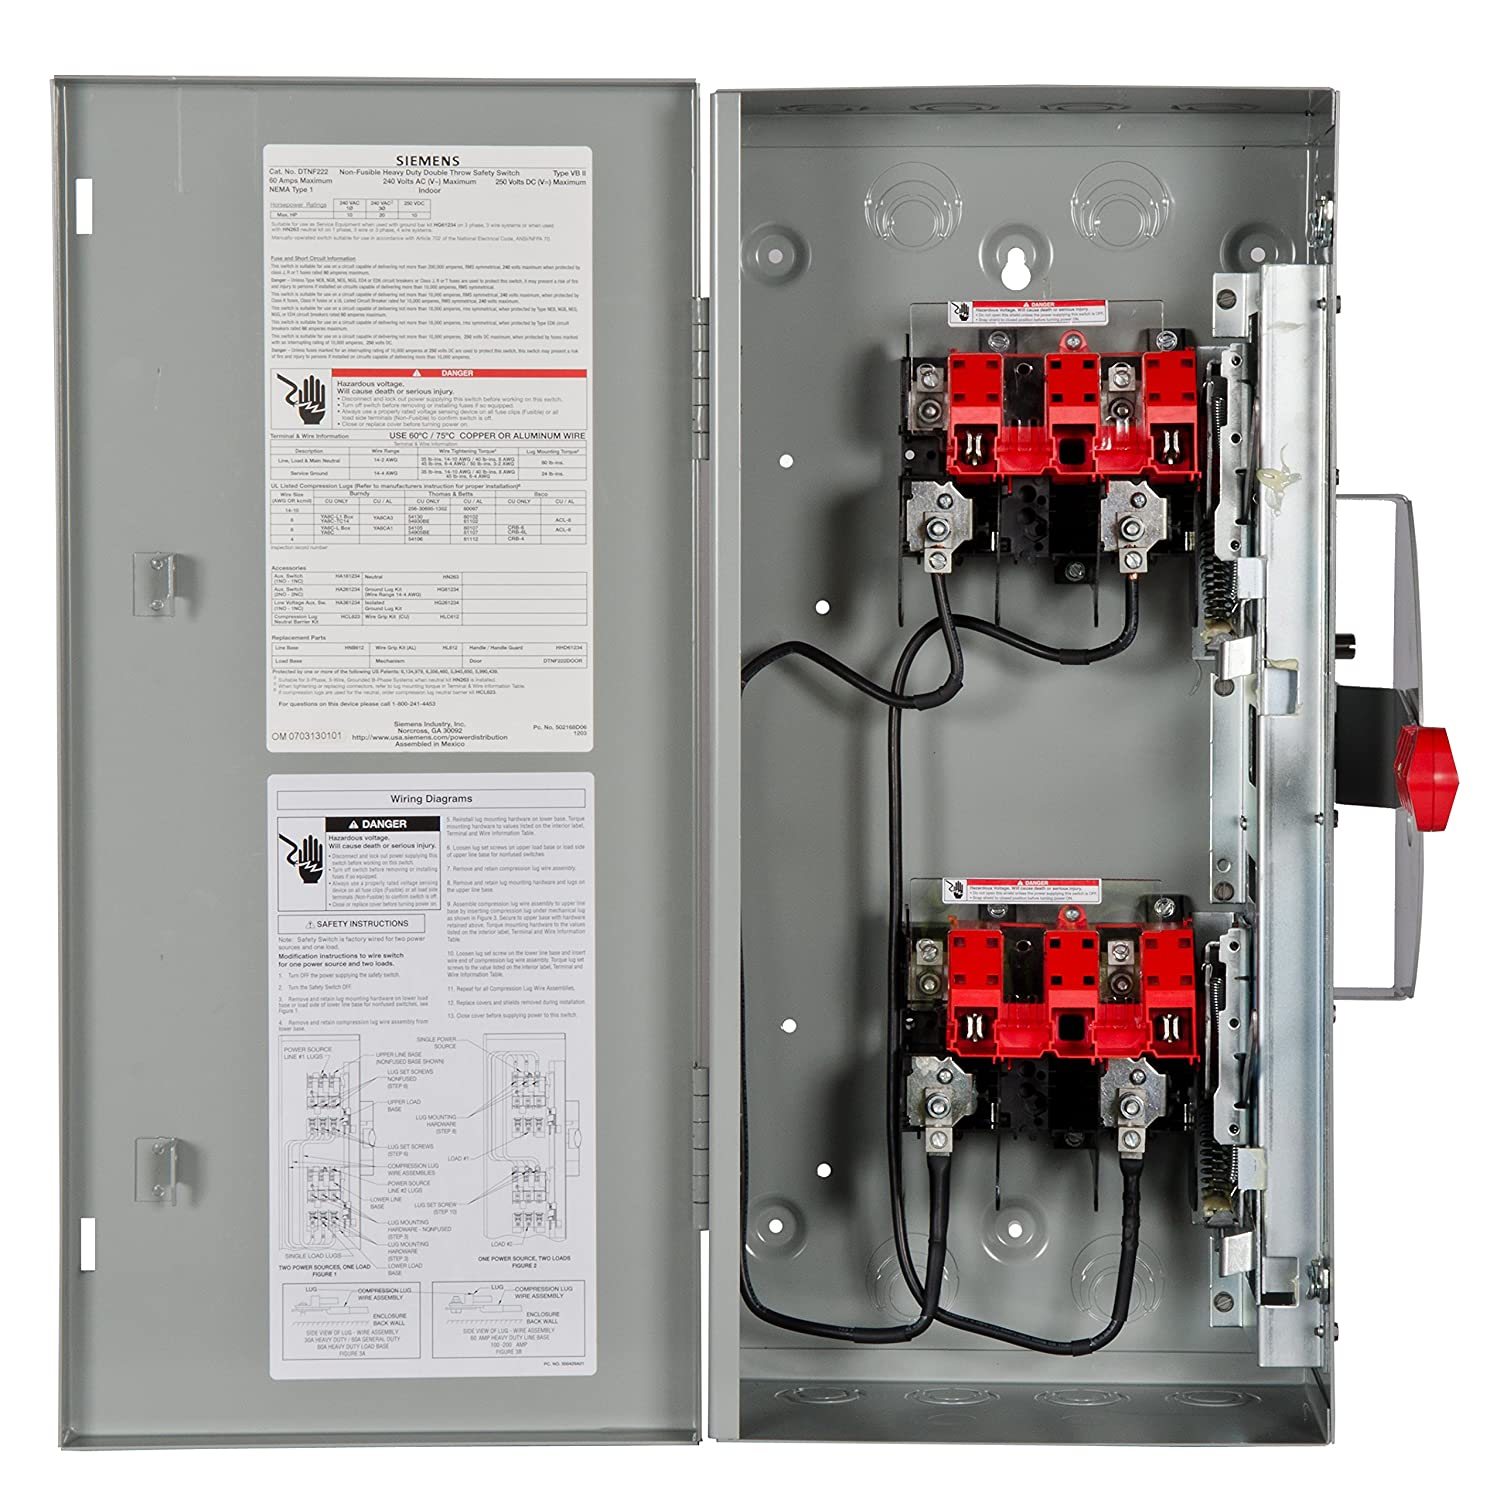 91lAx5zr1rL._SL1500_ siemens dtnf222 60 amp 2 pole 240 volt 2w non fused double throw double throw safety switch wiring diagram at n-0.co